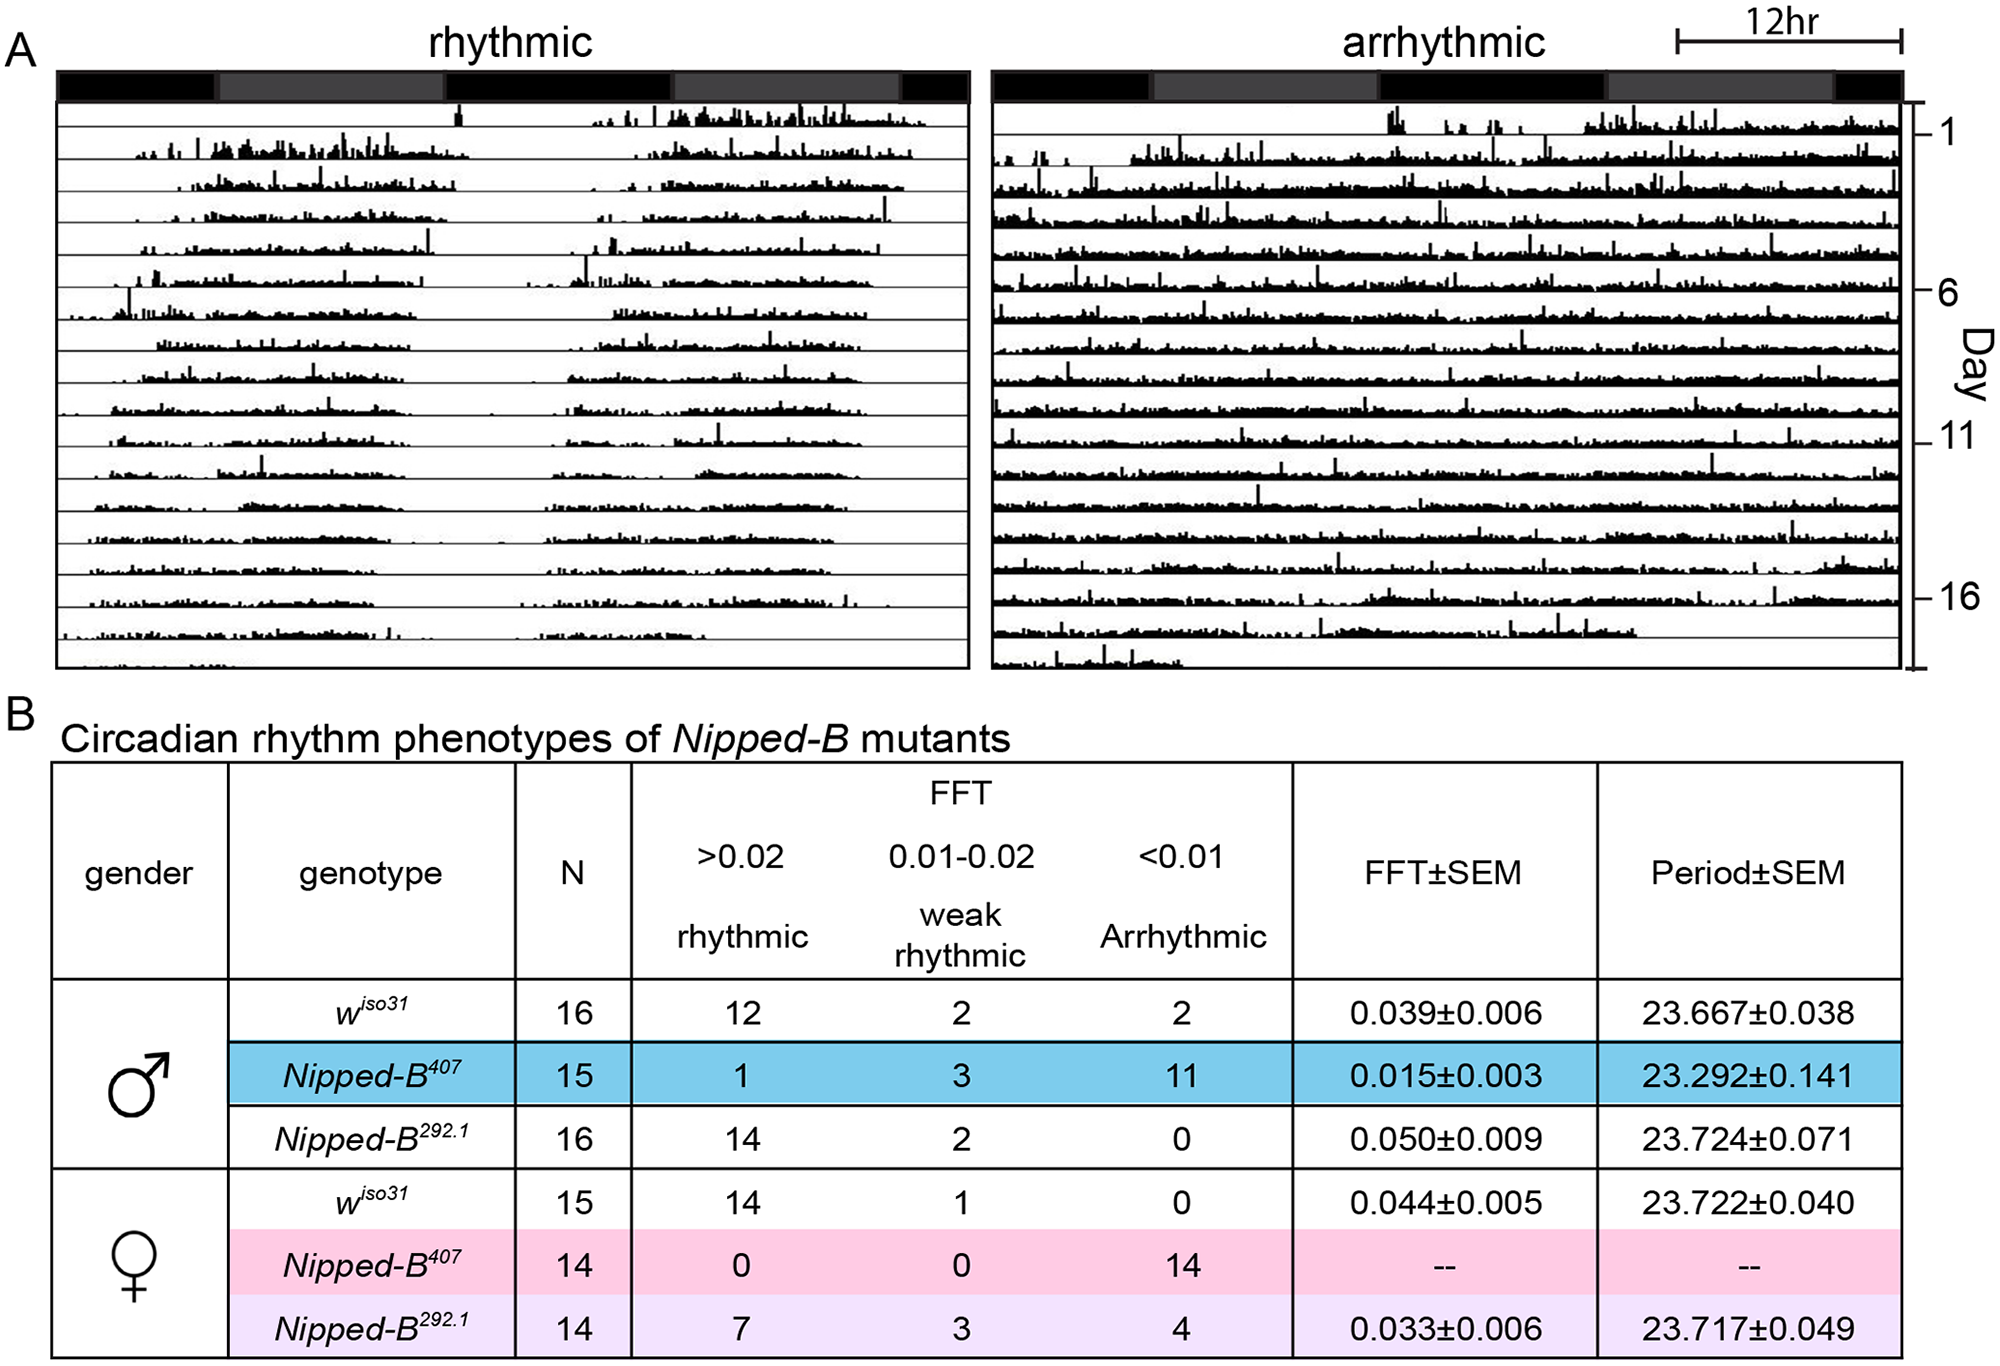 <i>Nipped-B</i> heterozygous mutants are arrhythmic.